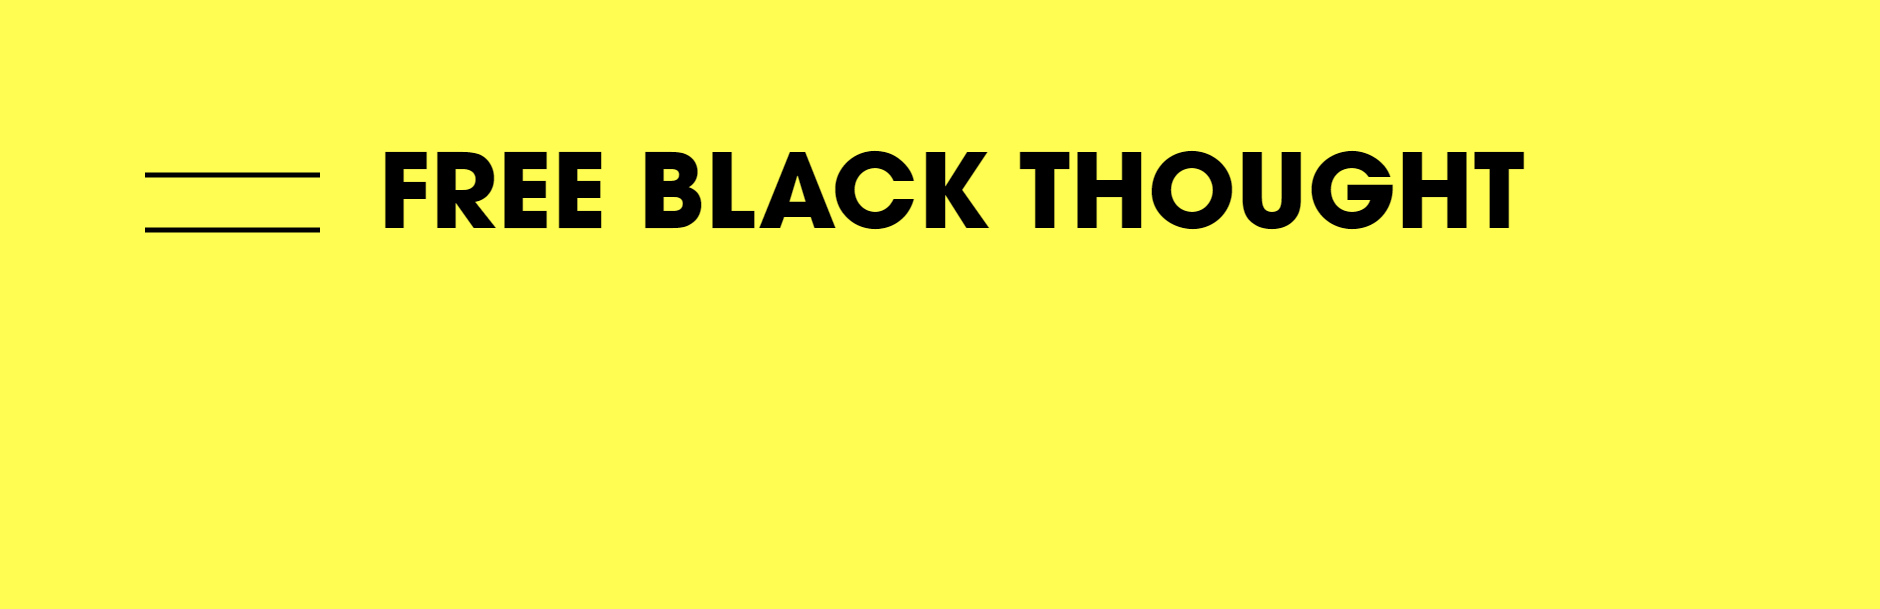 Black thought varies as widely as black individuals: Free Black Thought